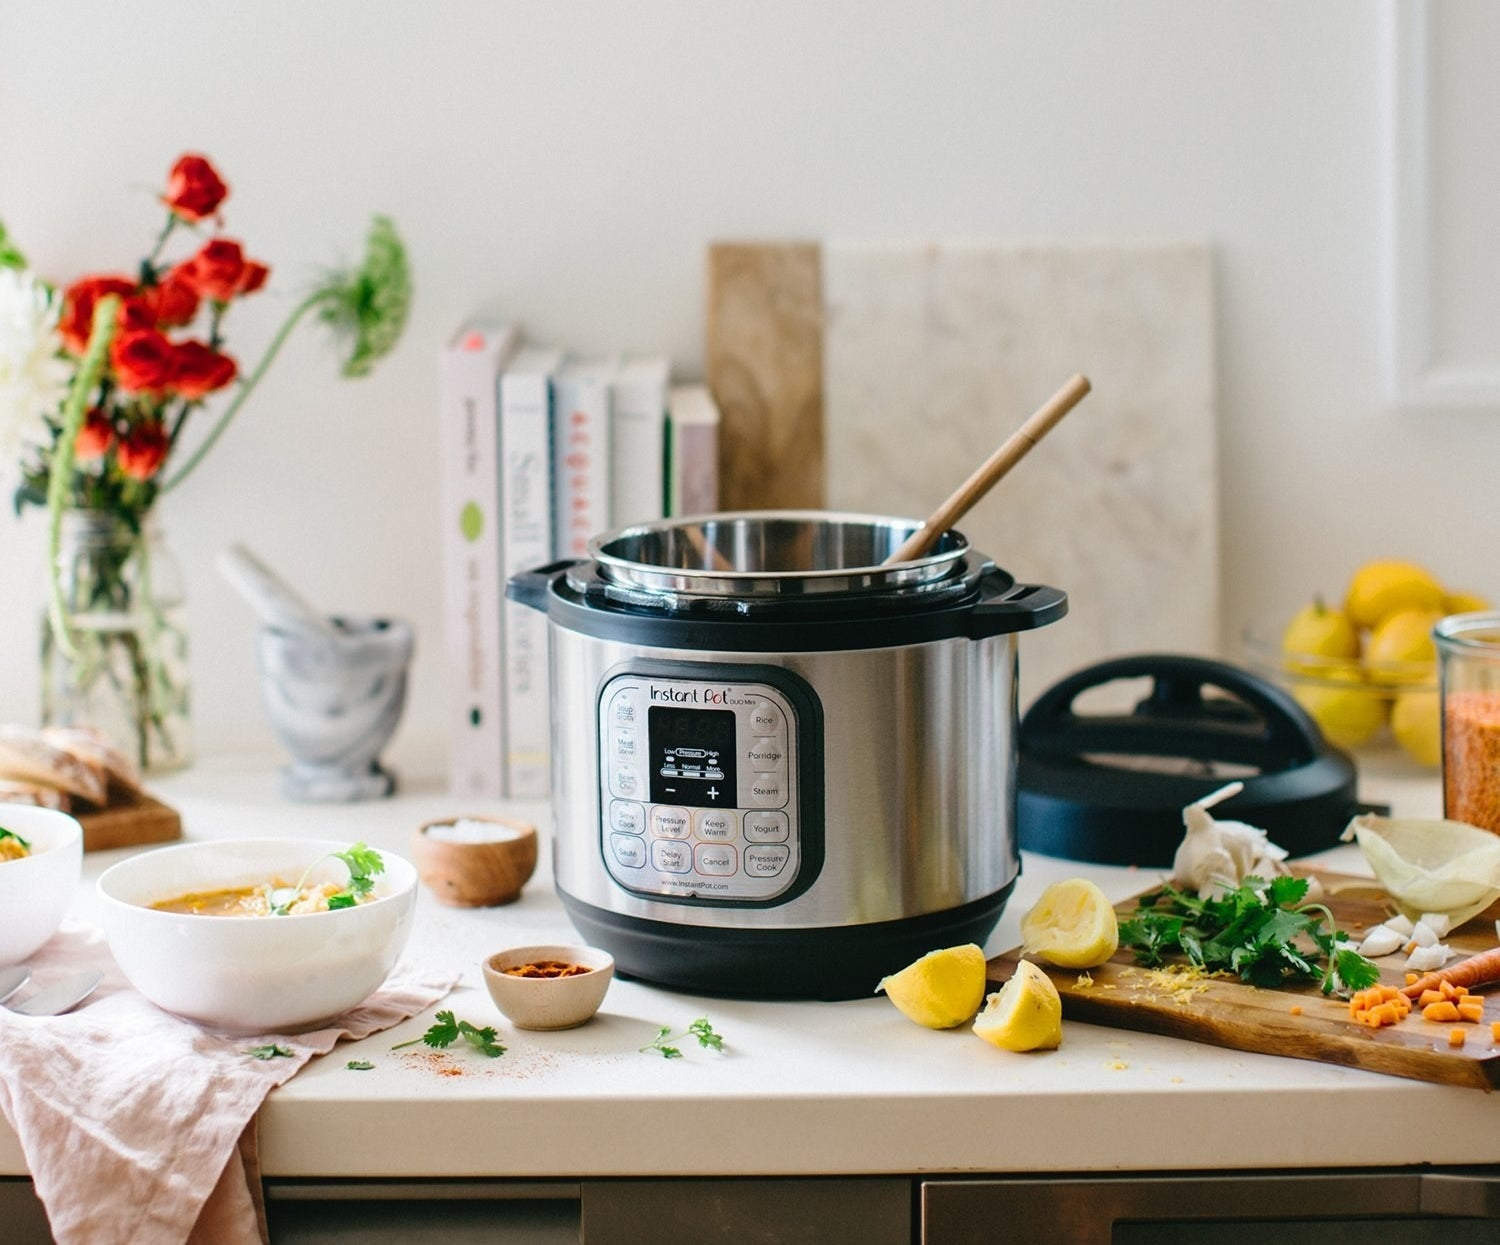 The Insta Pot with silver outside and black base and handles with an interface on the front